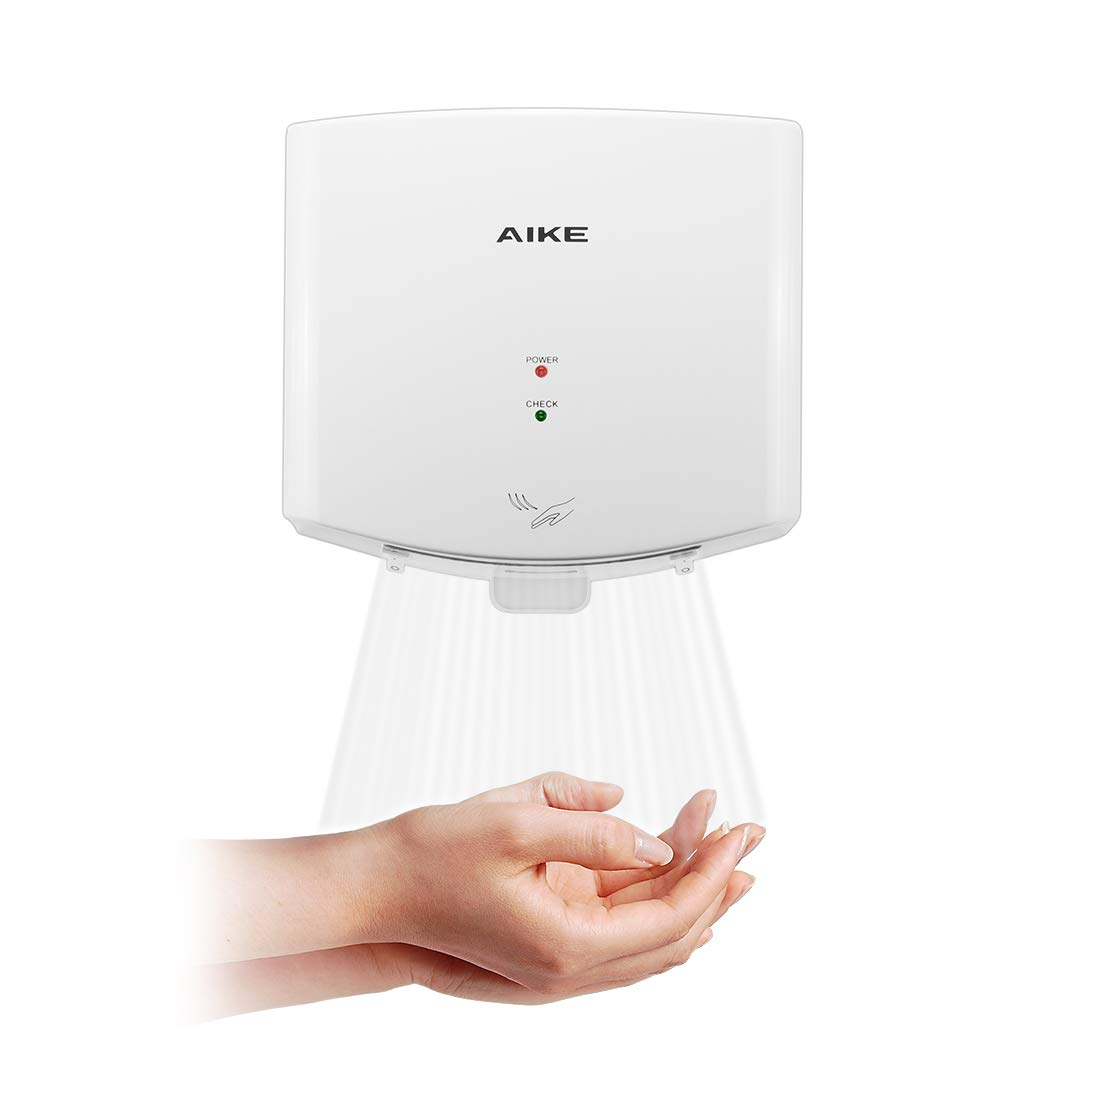 AIKE AK2630-K Compact Automatic High Speed Hand Dryer Commercial and Household,ABS Cover 1400W(White)